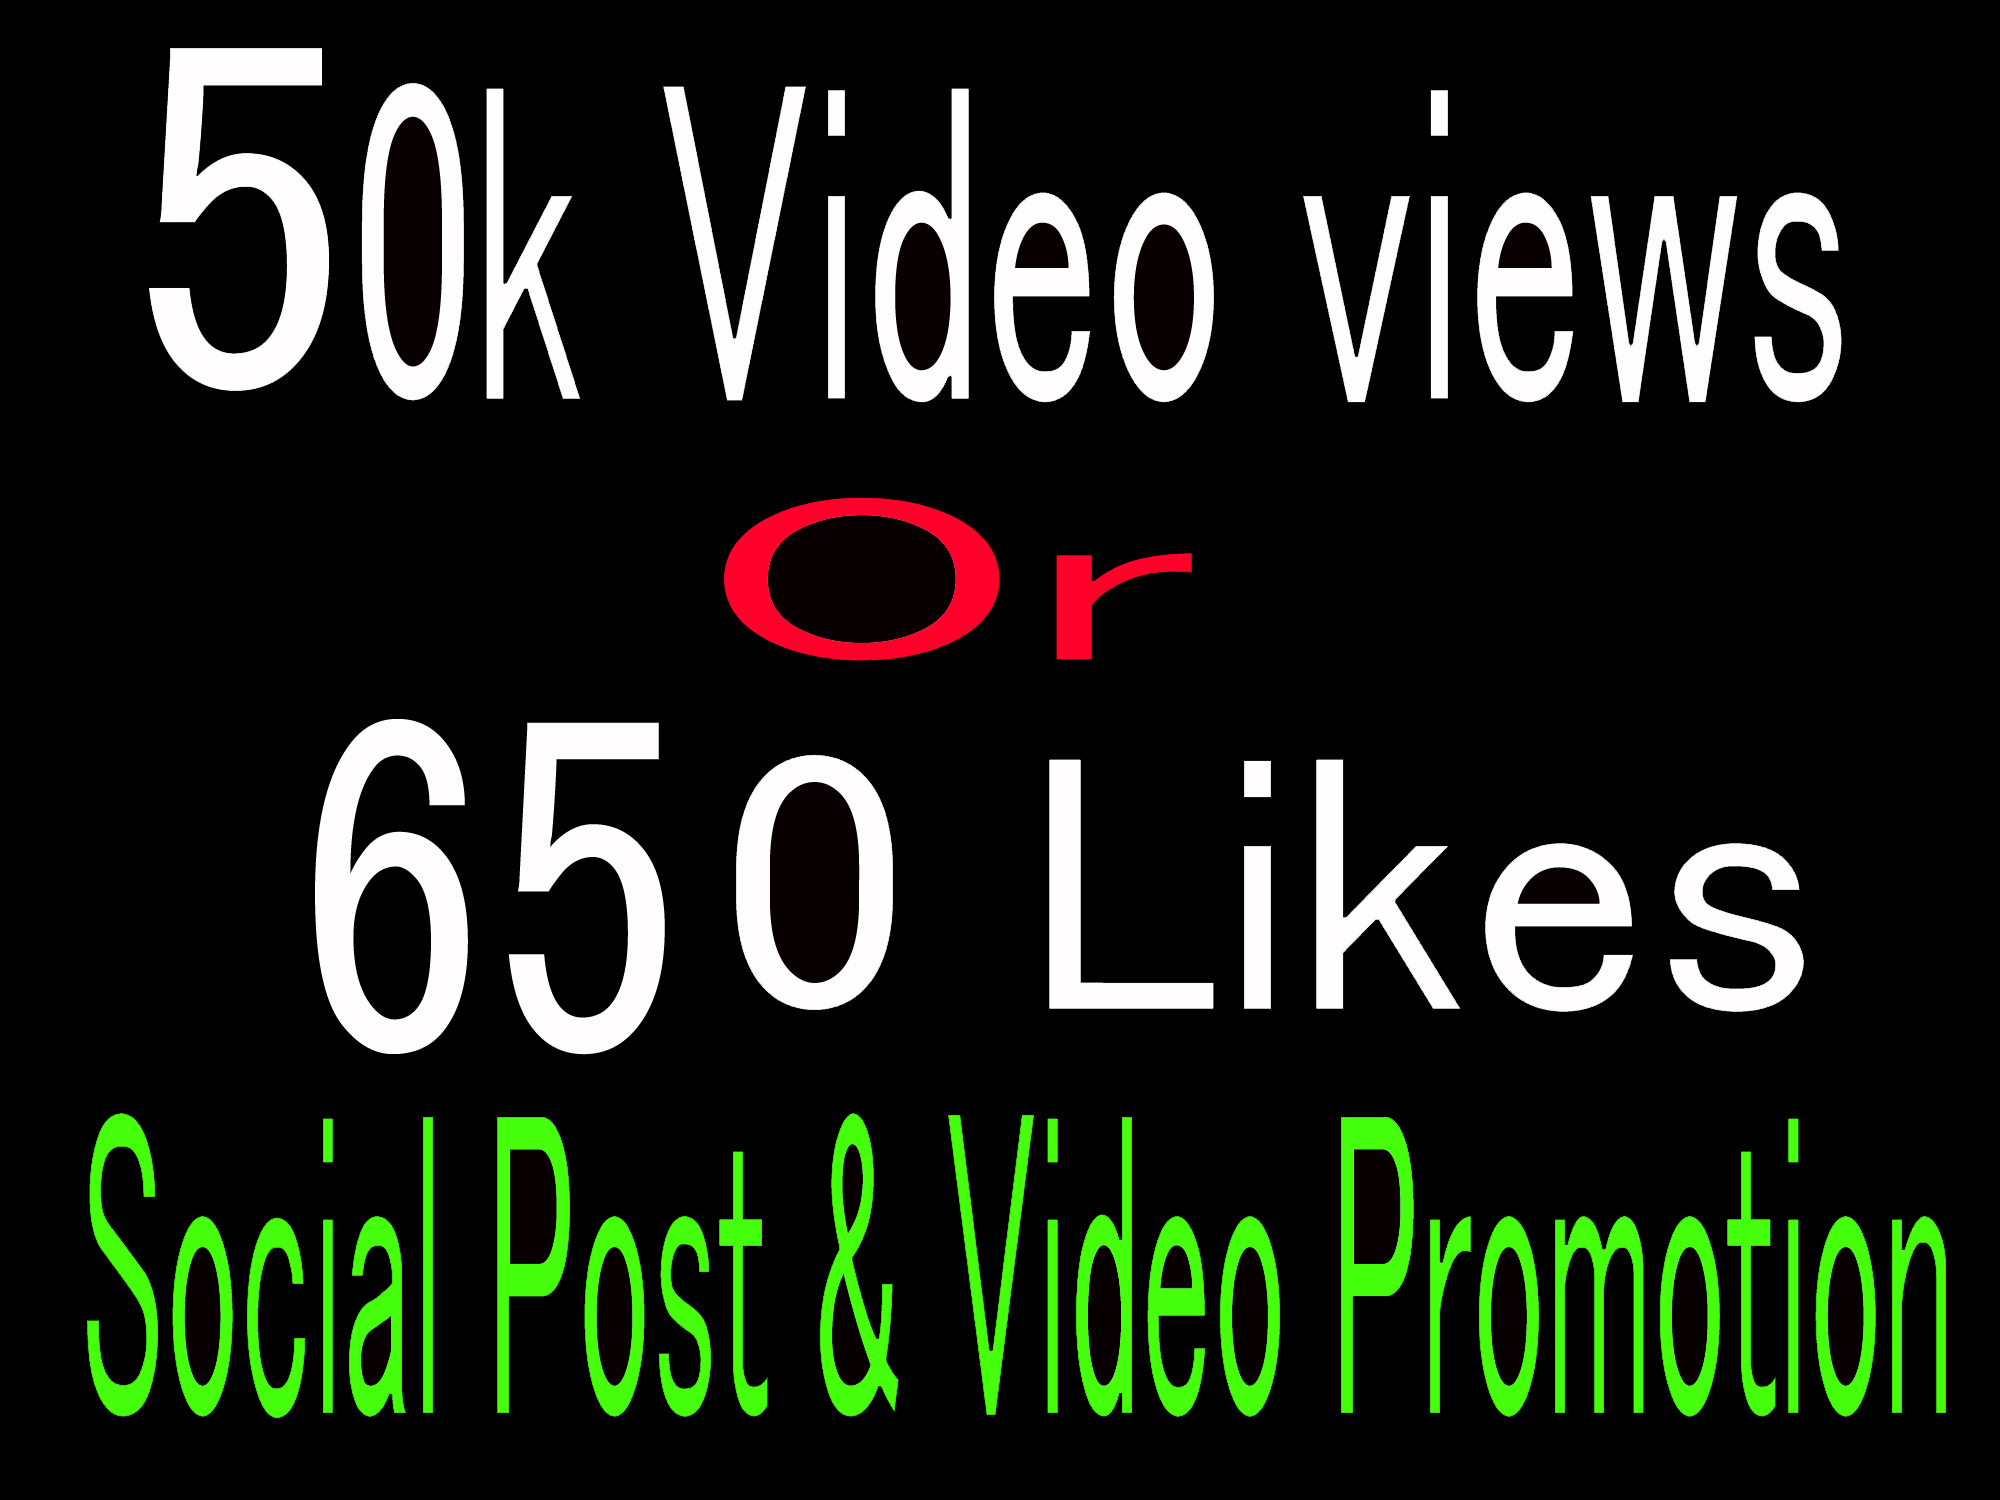 Instantly High Quality 50k video views or 650+ Likes promotion, Social media Marketing